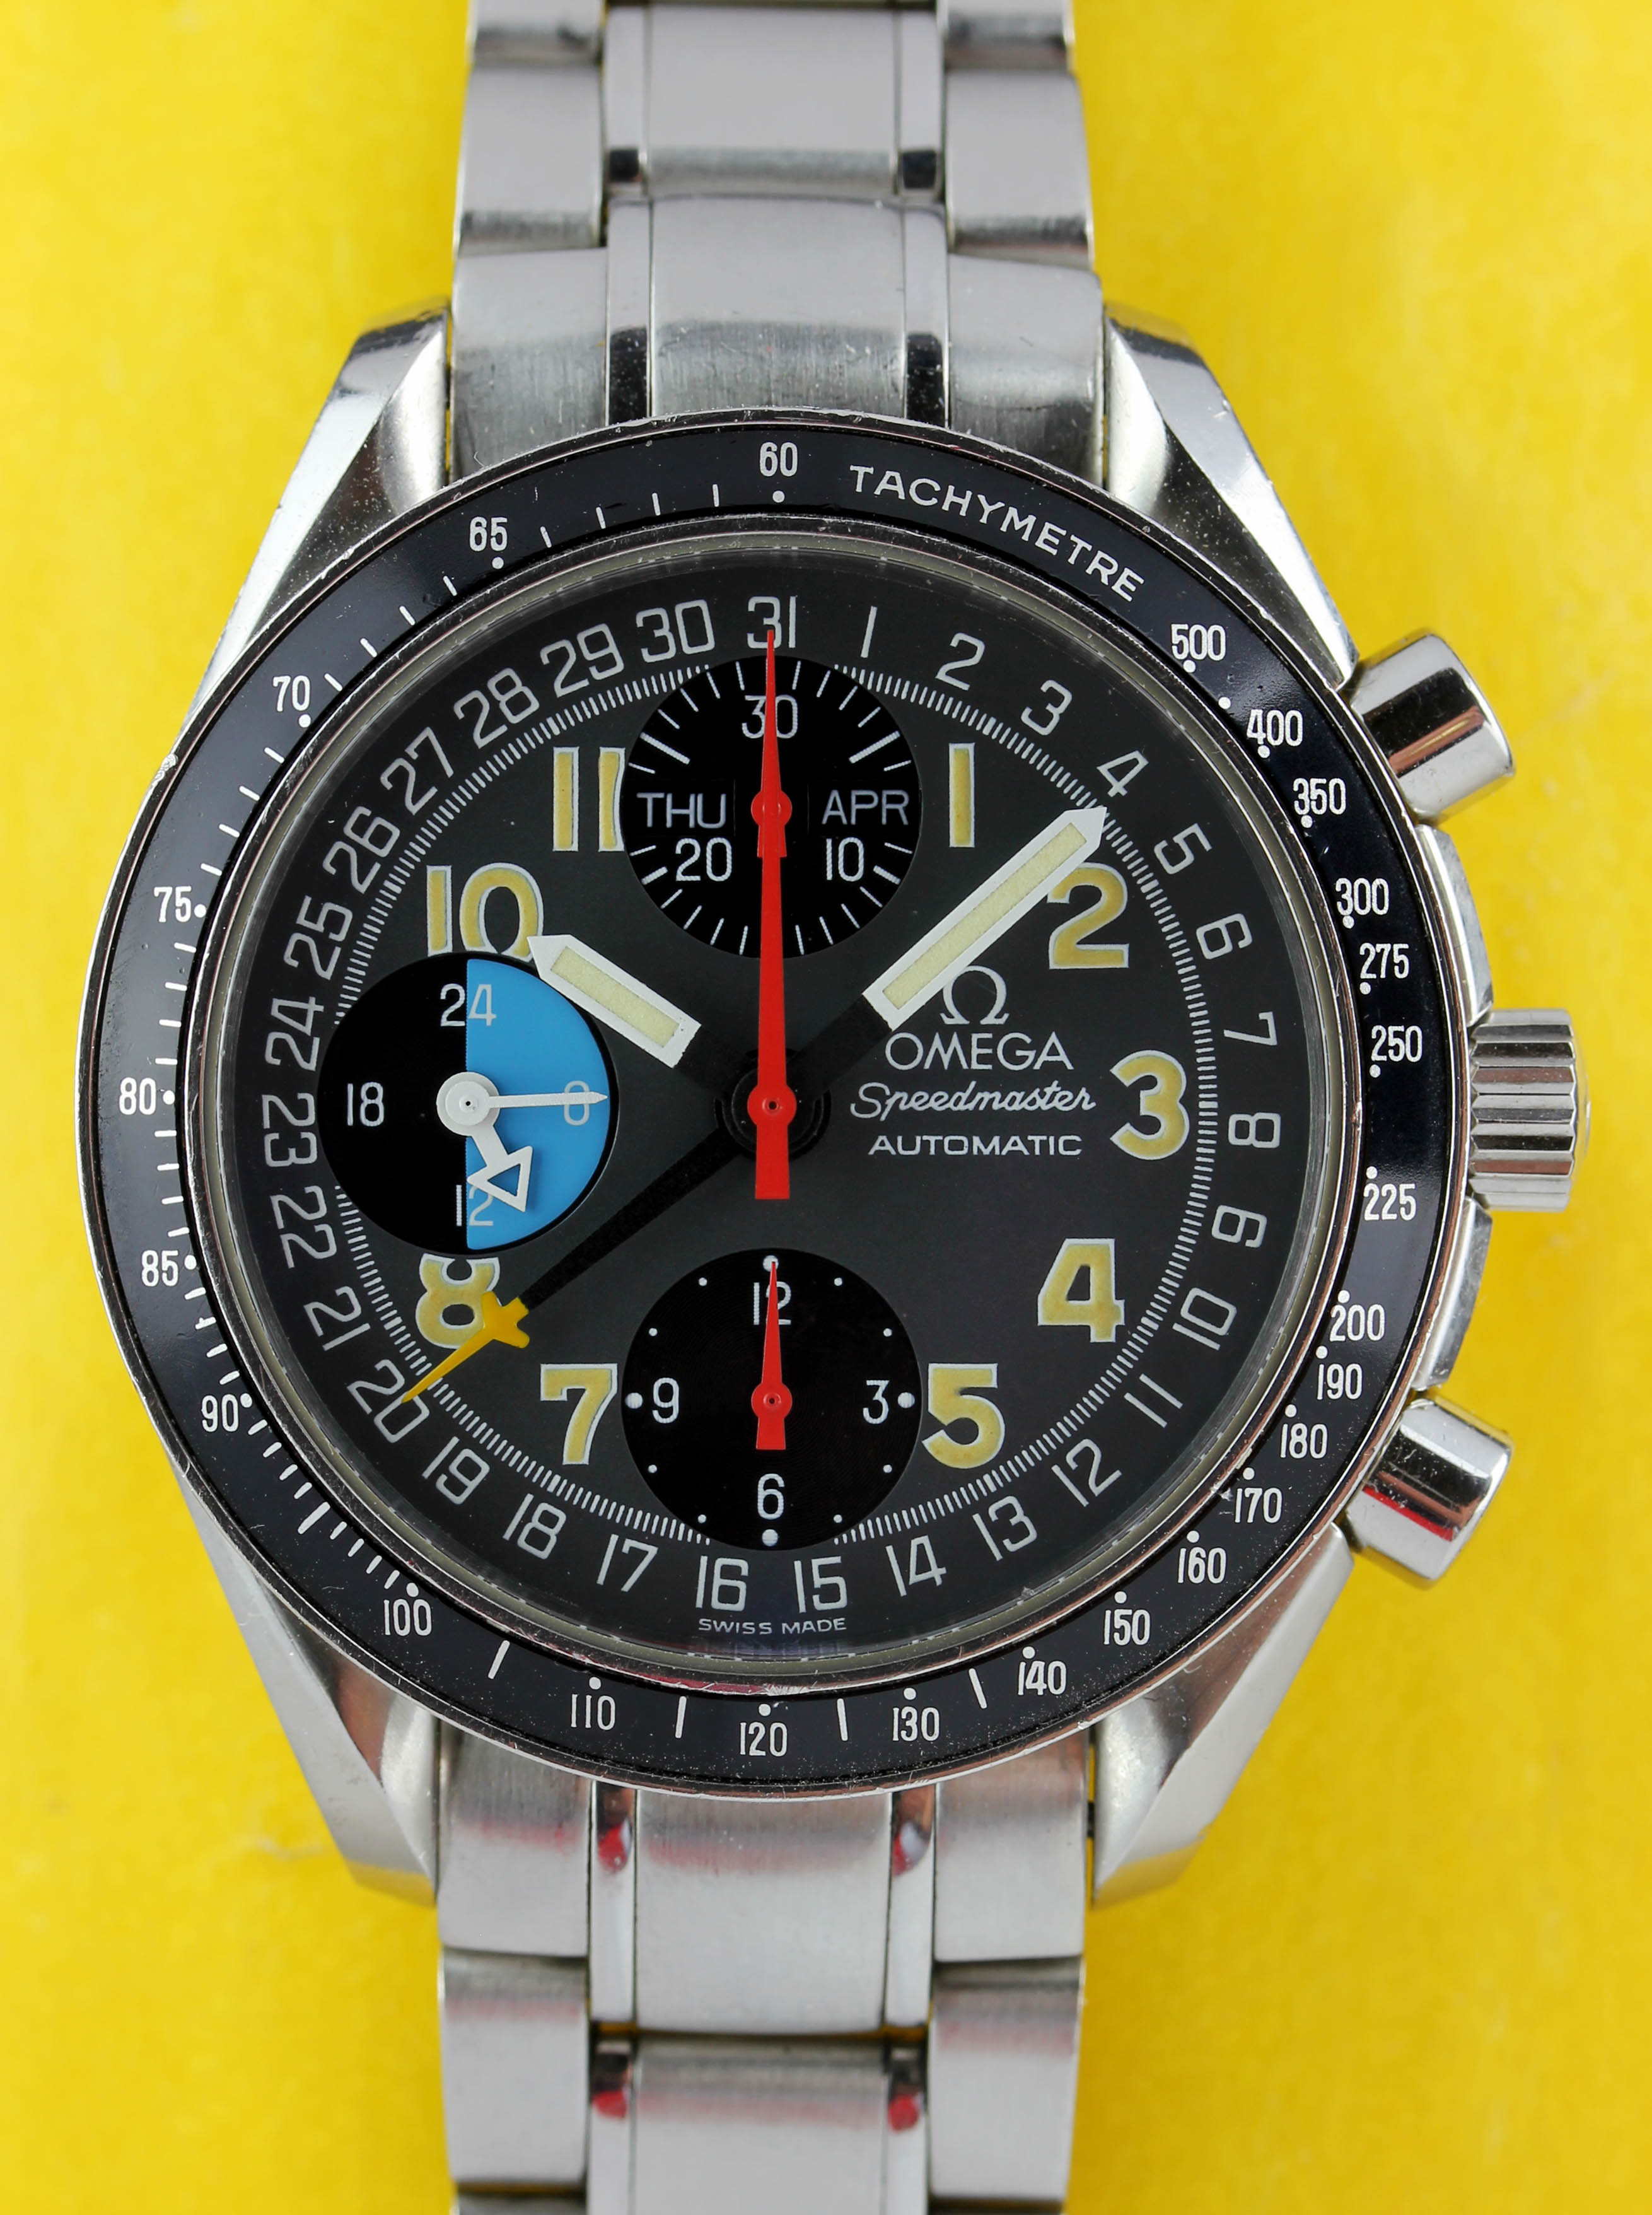 OMEGA Speedmaster Michael Schumacher Racing Day Date automatic